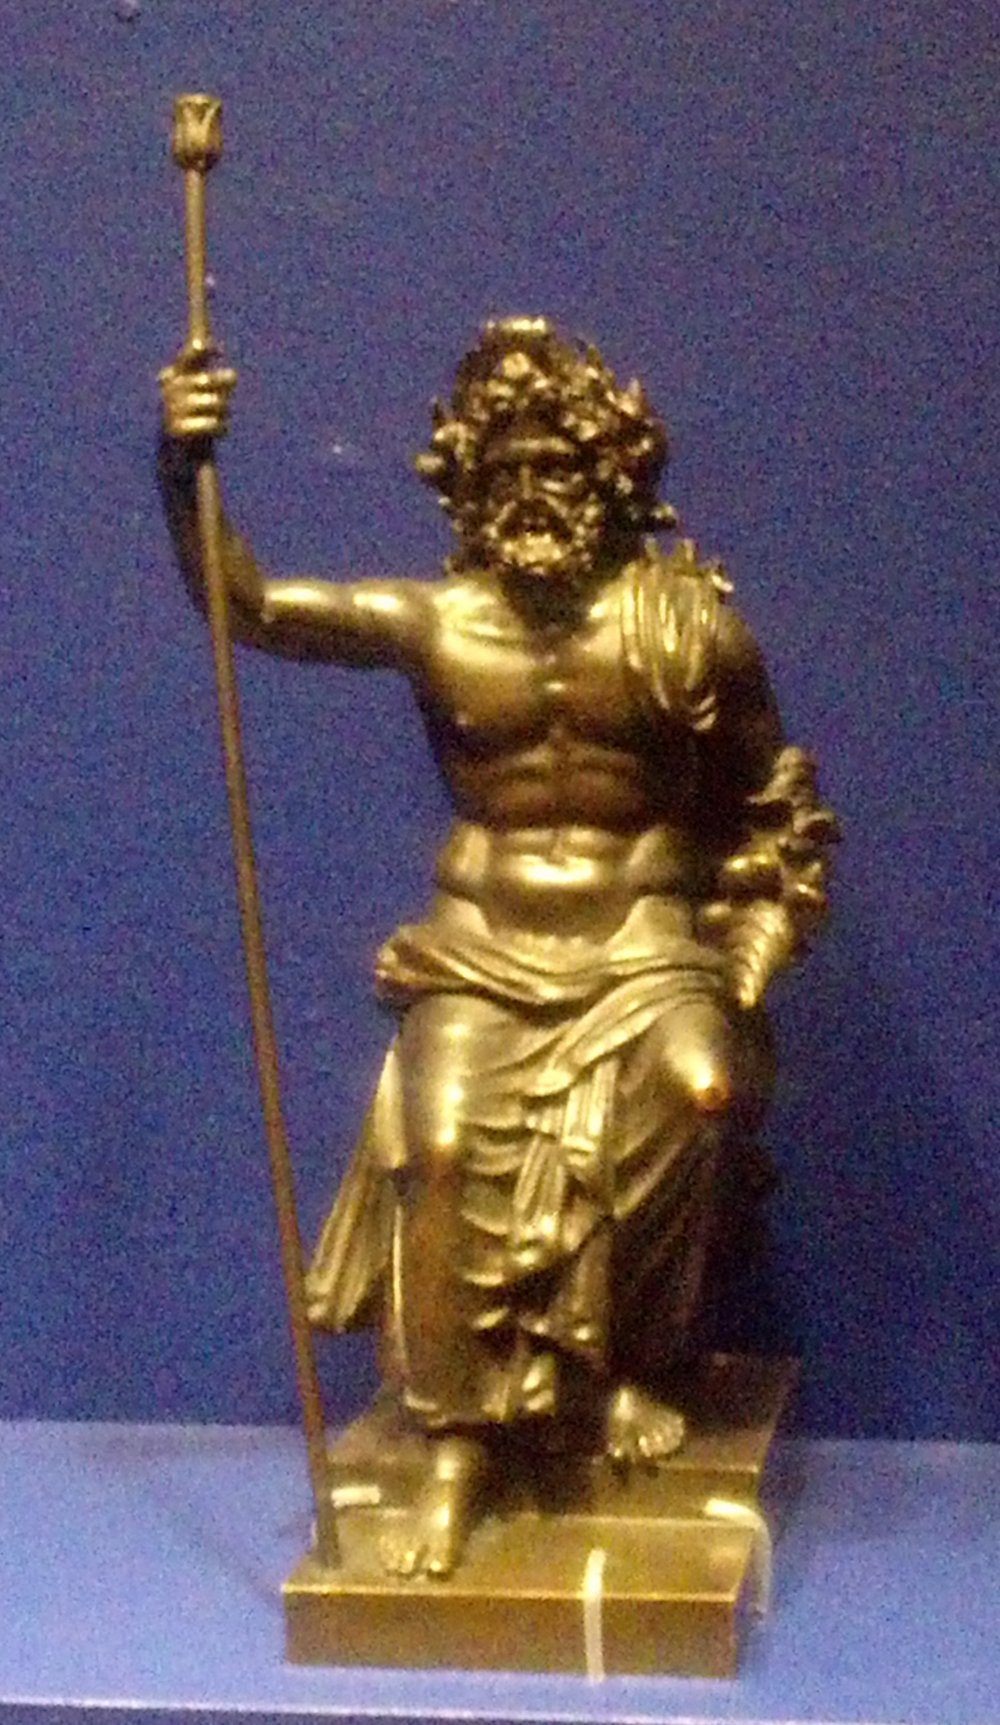 Bronze statuette in bronze, only a few inches high. 1st-2nd Century A.D. (or, okay, B.C.E.). Photo taken by me from a visiting exhibit at the Portland Art Museum. This pose imitates that of the 43-foot tall statue by Phidias in Zeus' temple in Olympia, one of the Seven Wonders of the Ancient World. This was only a few inches high.